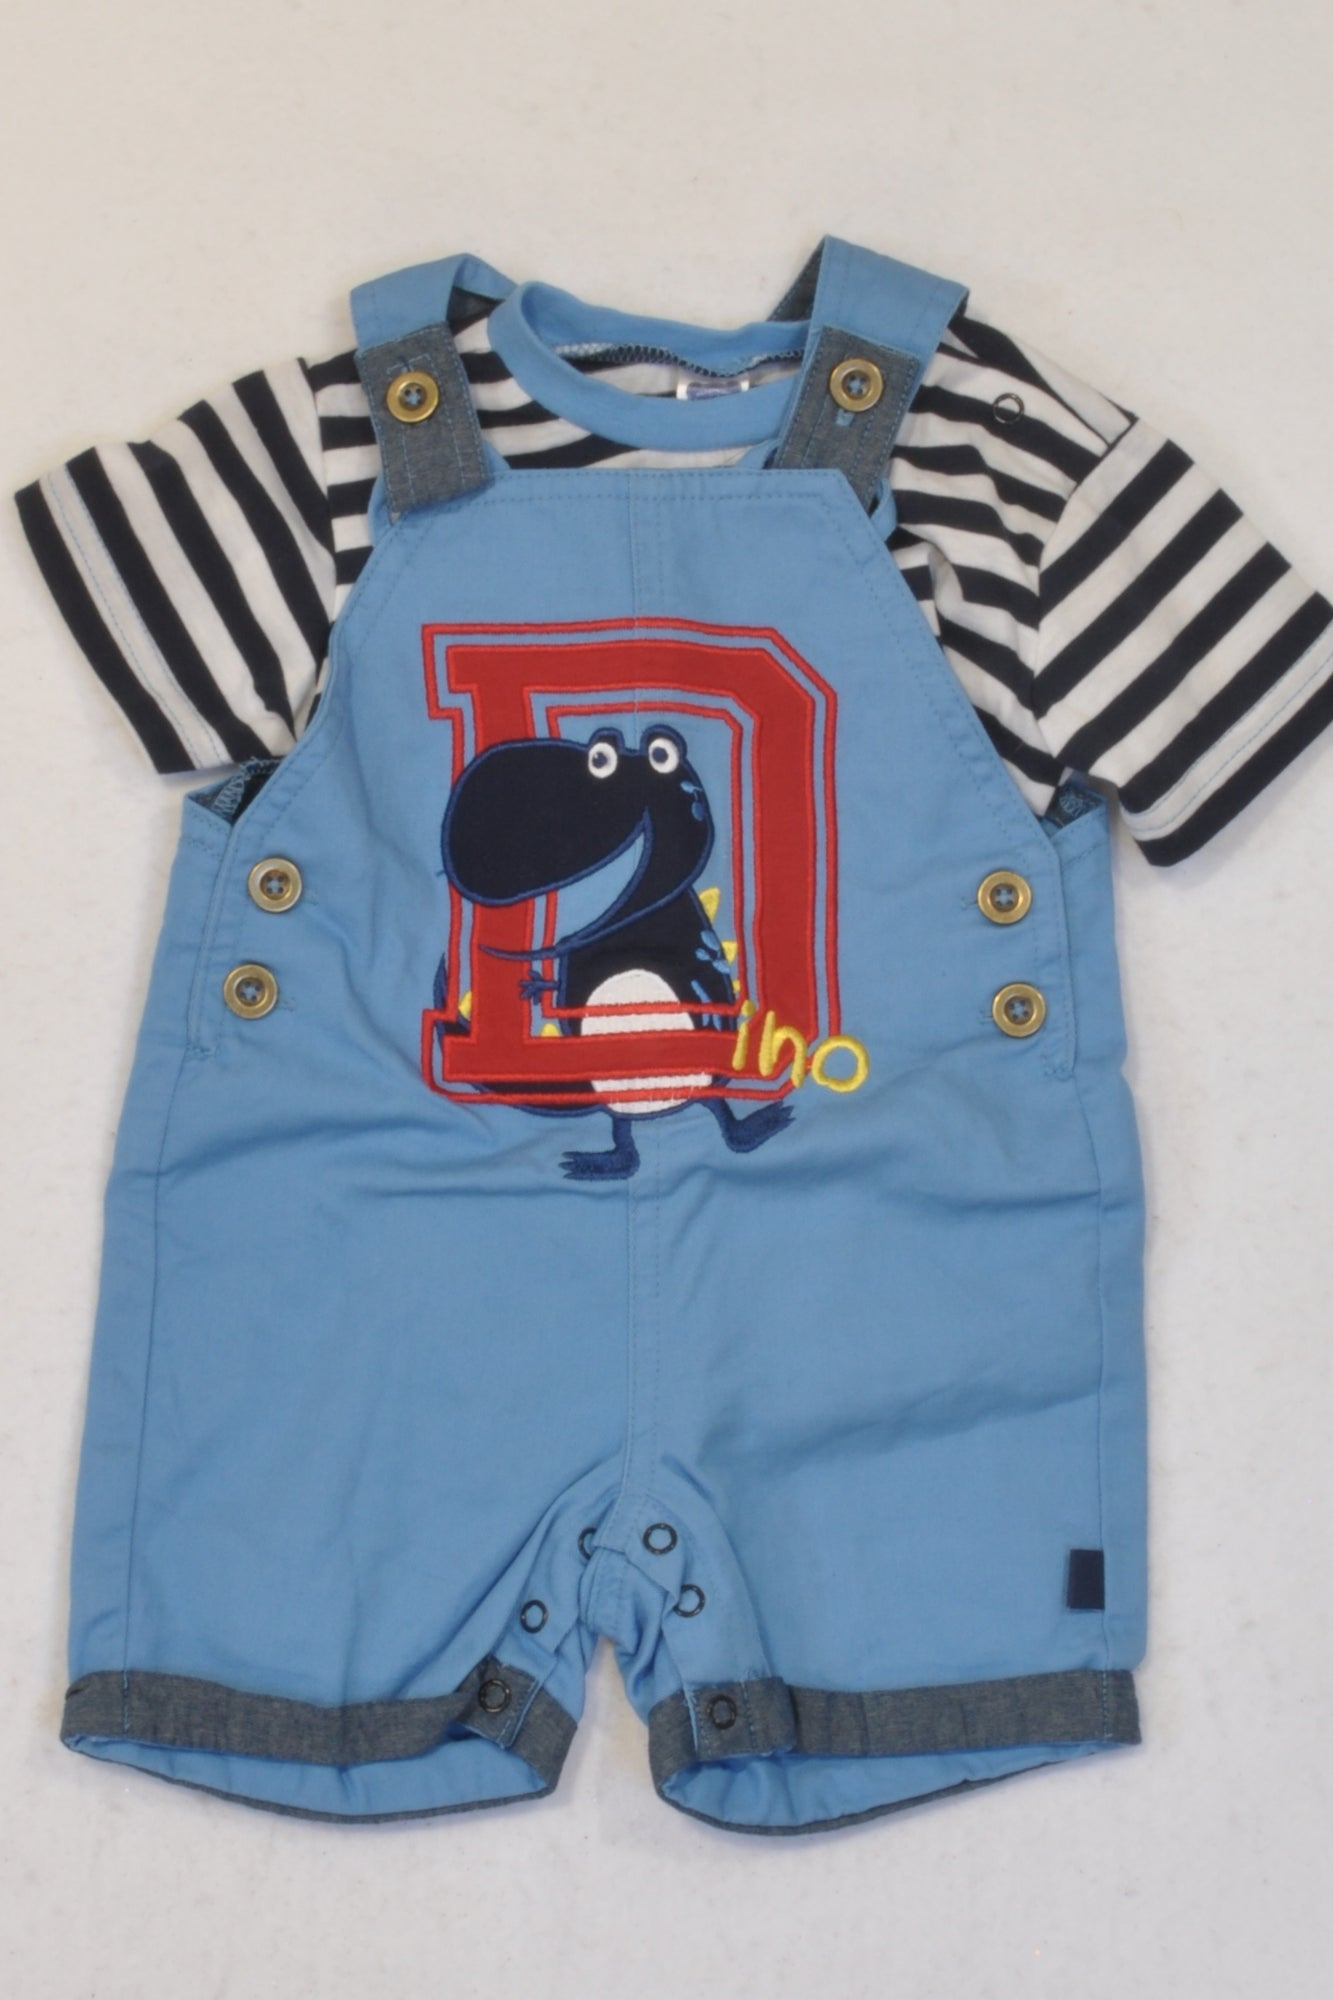 Ackermans Blue Striped Dino Dungarees Outfit Boys 0-3 months